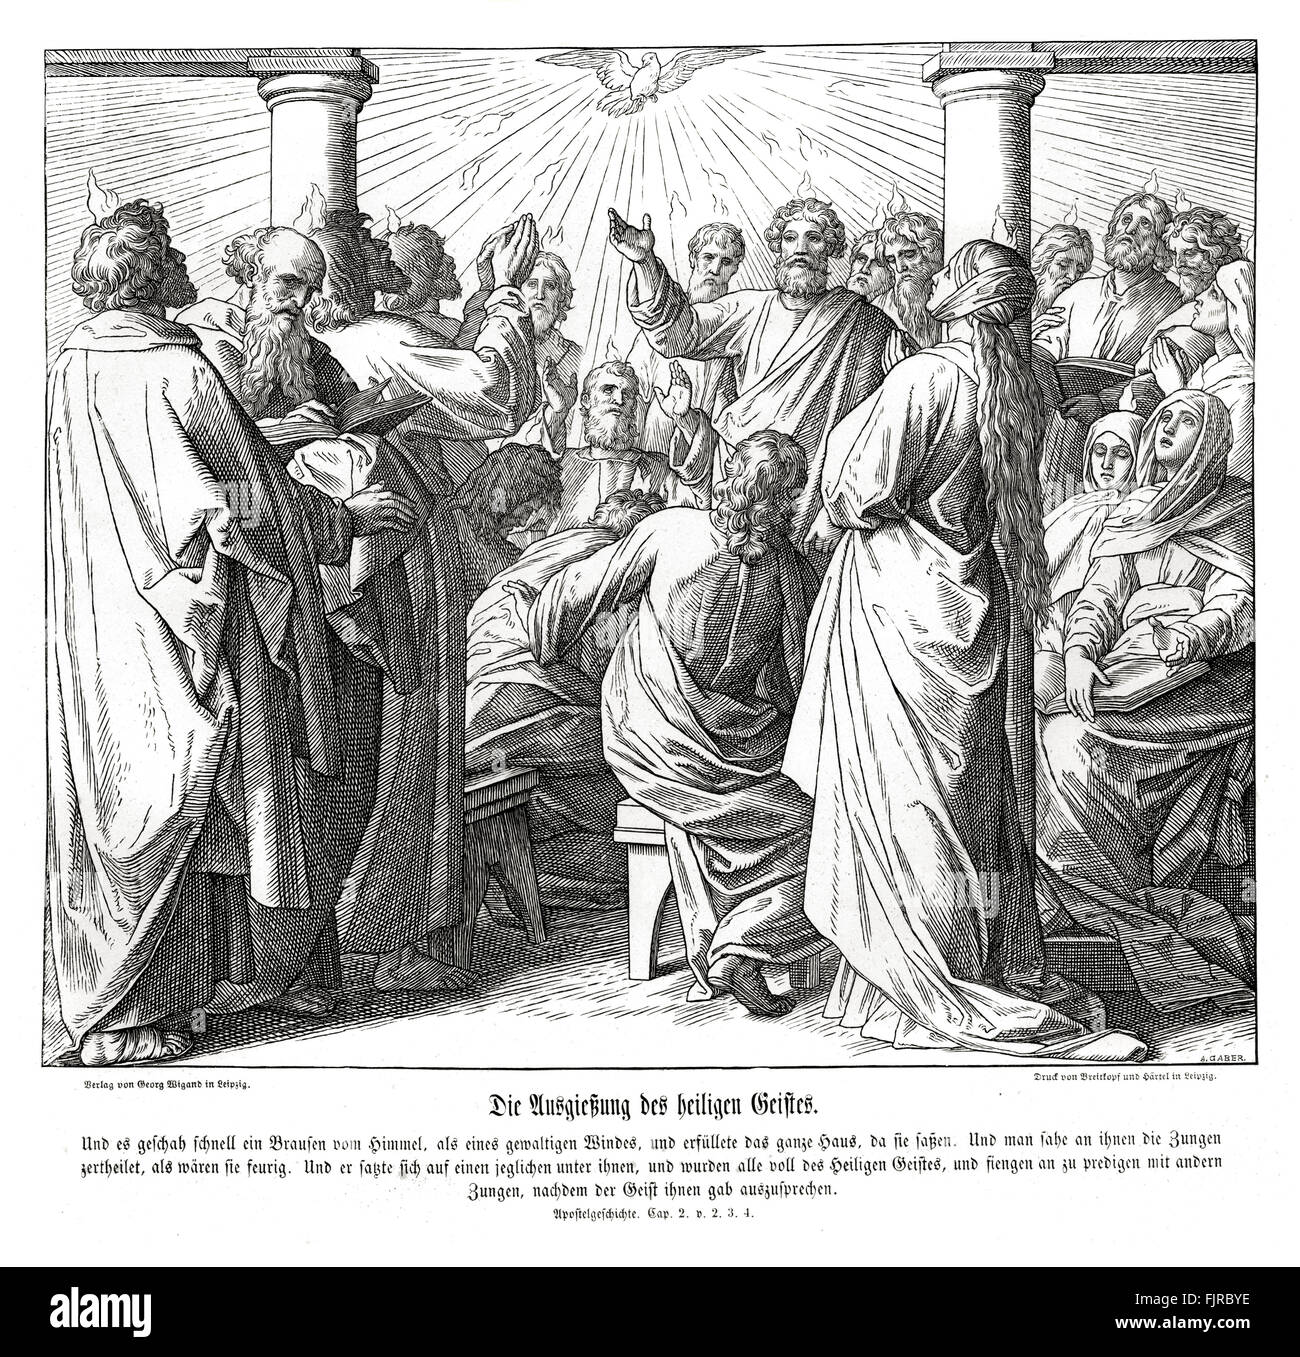 The apostles are filled with the holy ghost, Acts chapter II verses 2 - 4 'And suddenly there came a sound from - Stock Image